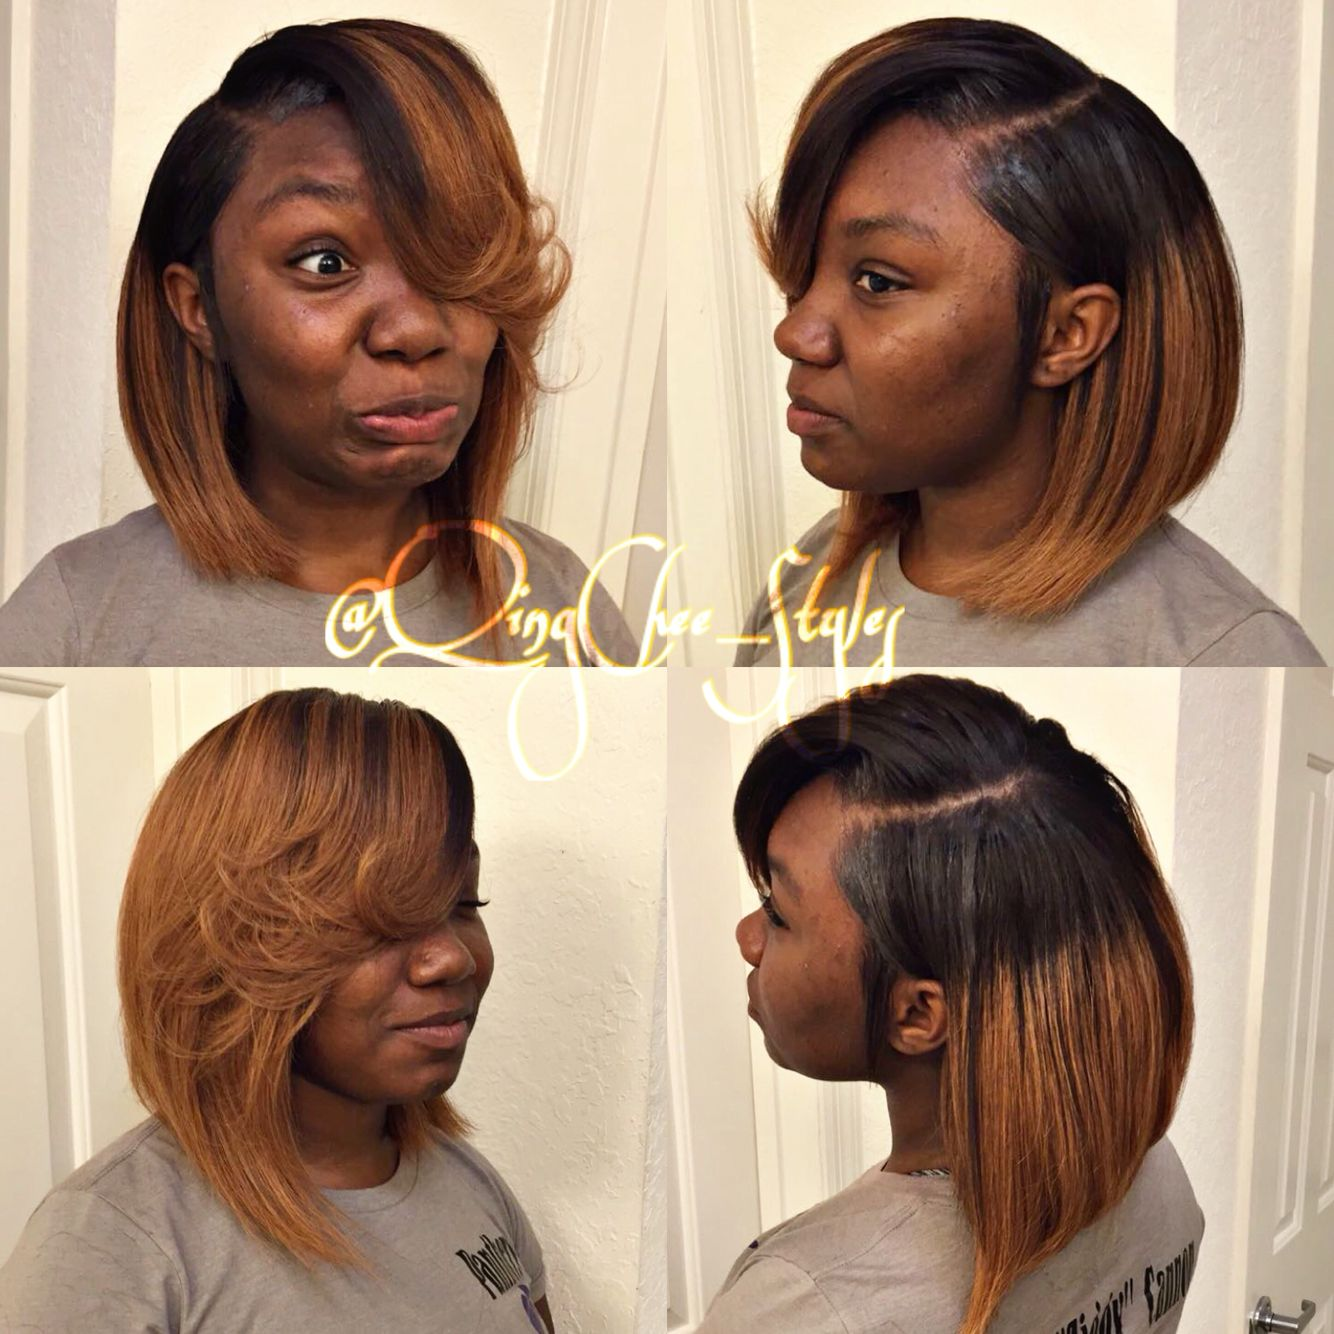 Peachy Bob Sew In With Side Bangs Google Search Hairstyles Short Hairstyles For Black Women Fulllsitofus